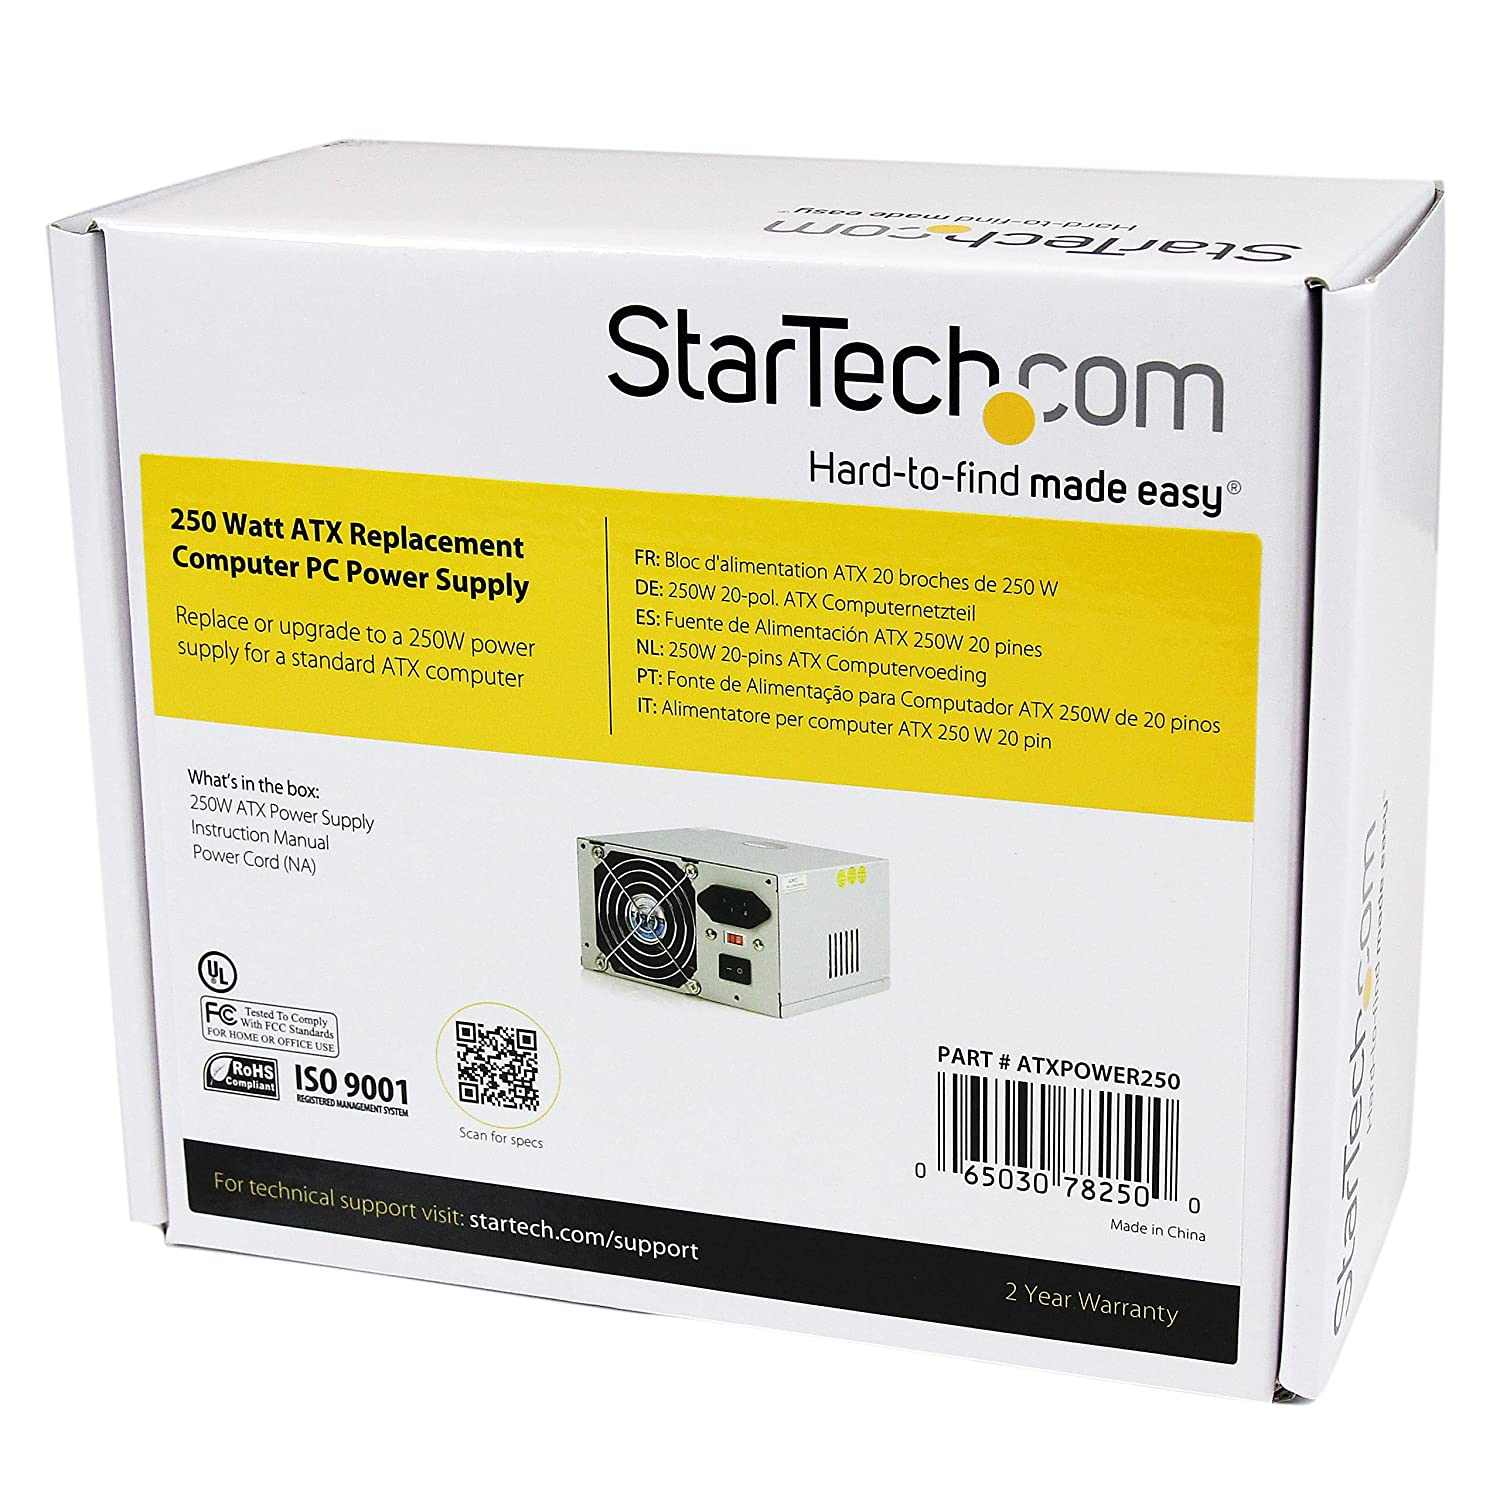 Startechcom 250 Watt Atx Replacement Computer Pc Power Thread Cant Get Old Psu To Fans In Grow Supply Atxpower250 Electronics